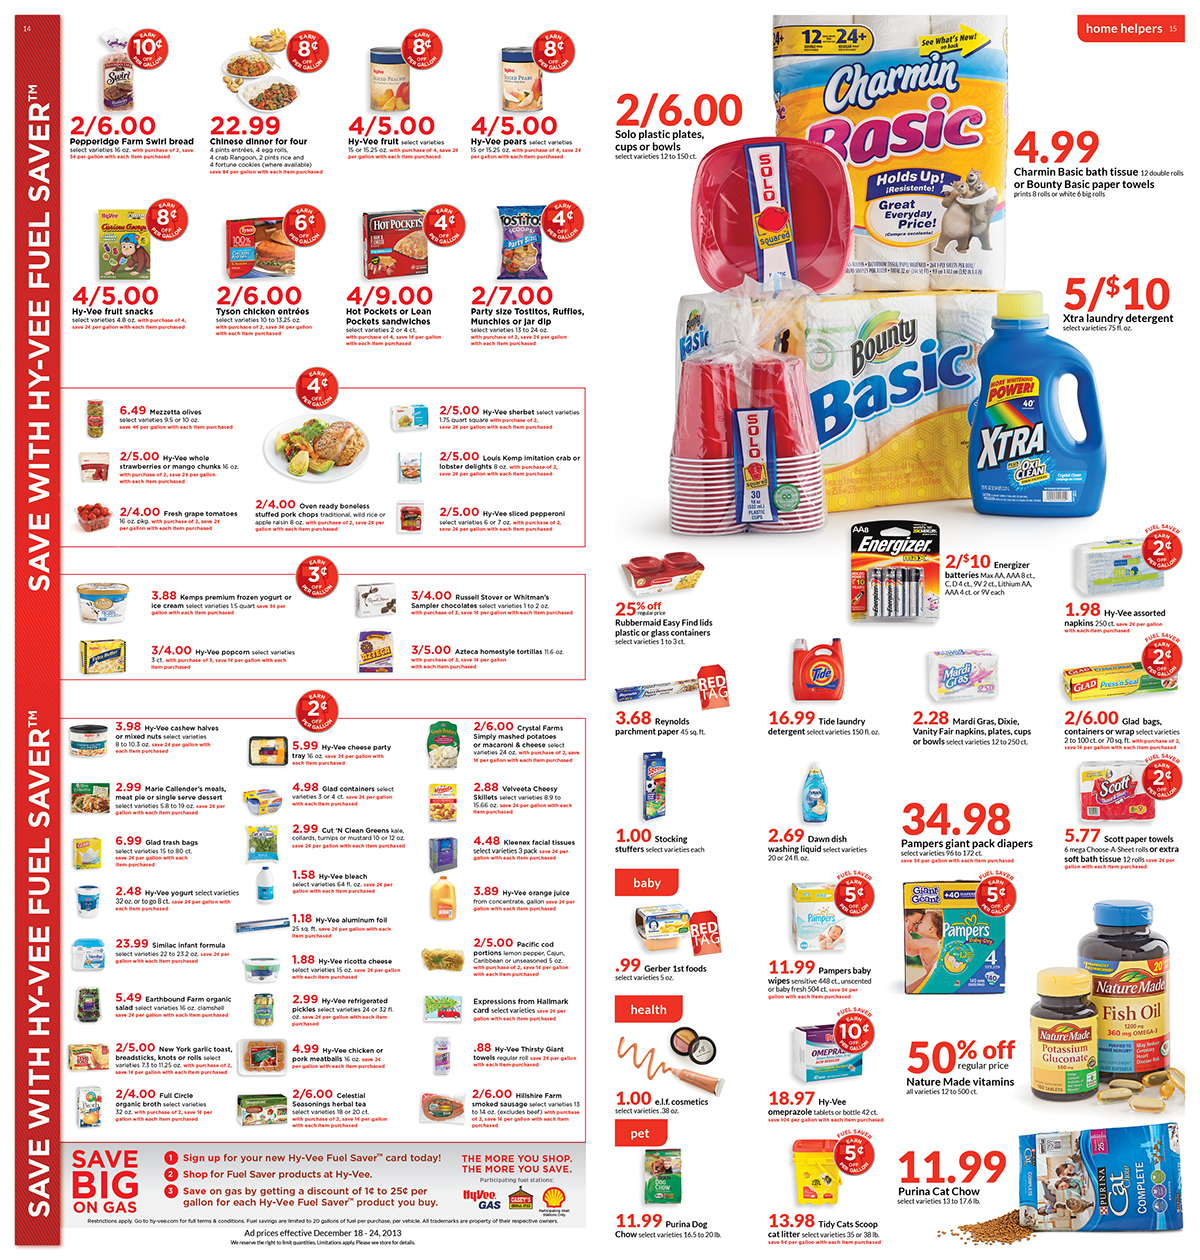 image about Adventureland Coupons Printable known as Adventureland des moines discount codes hyvee - Elephant bar